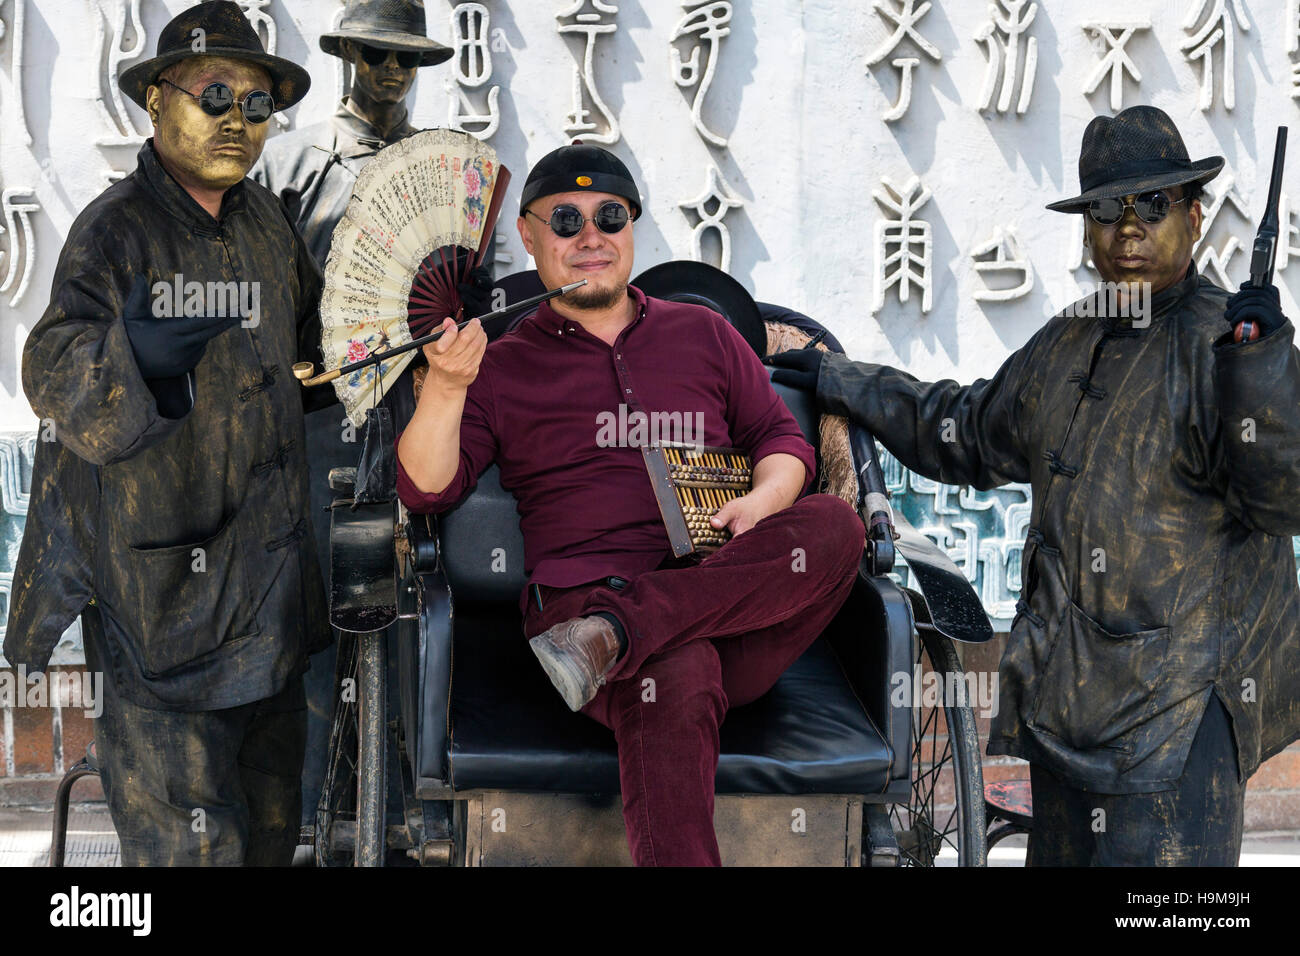 Chinese man posing for gangster portrait, Xian, China - Stock Image